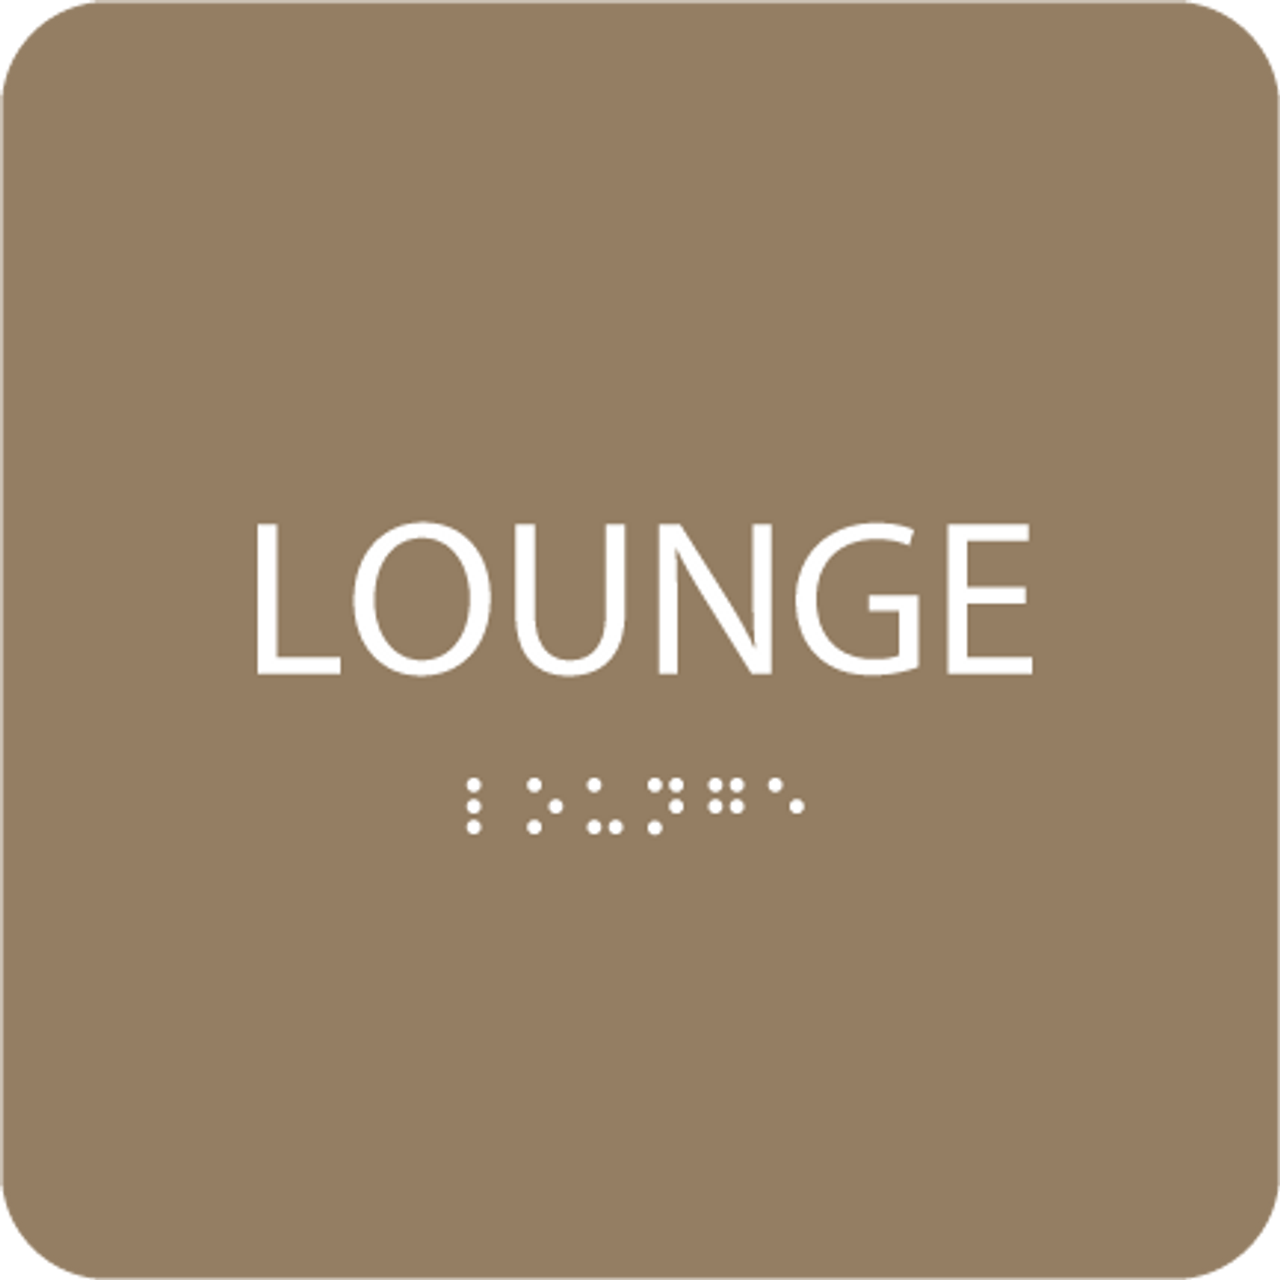 Brown Lounge ADA Sign